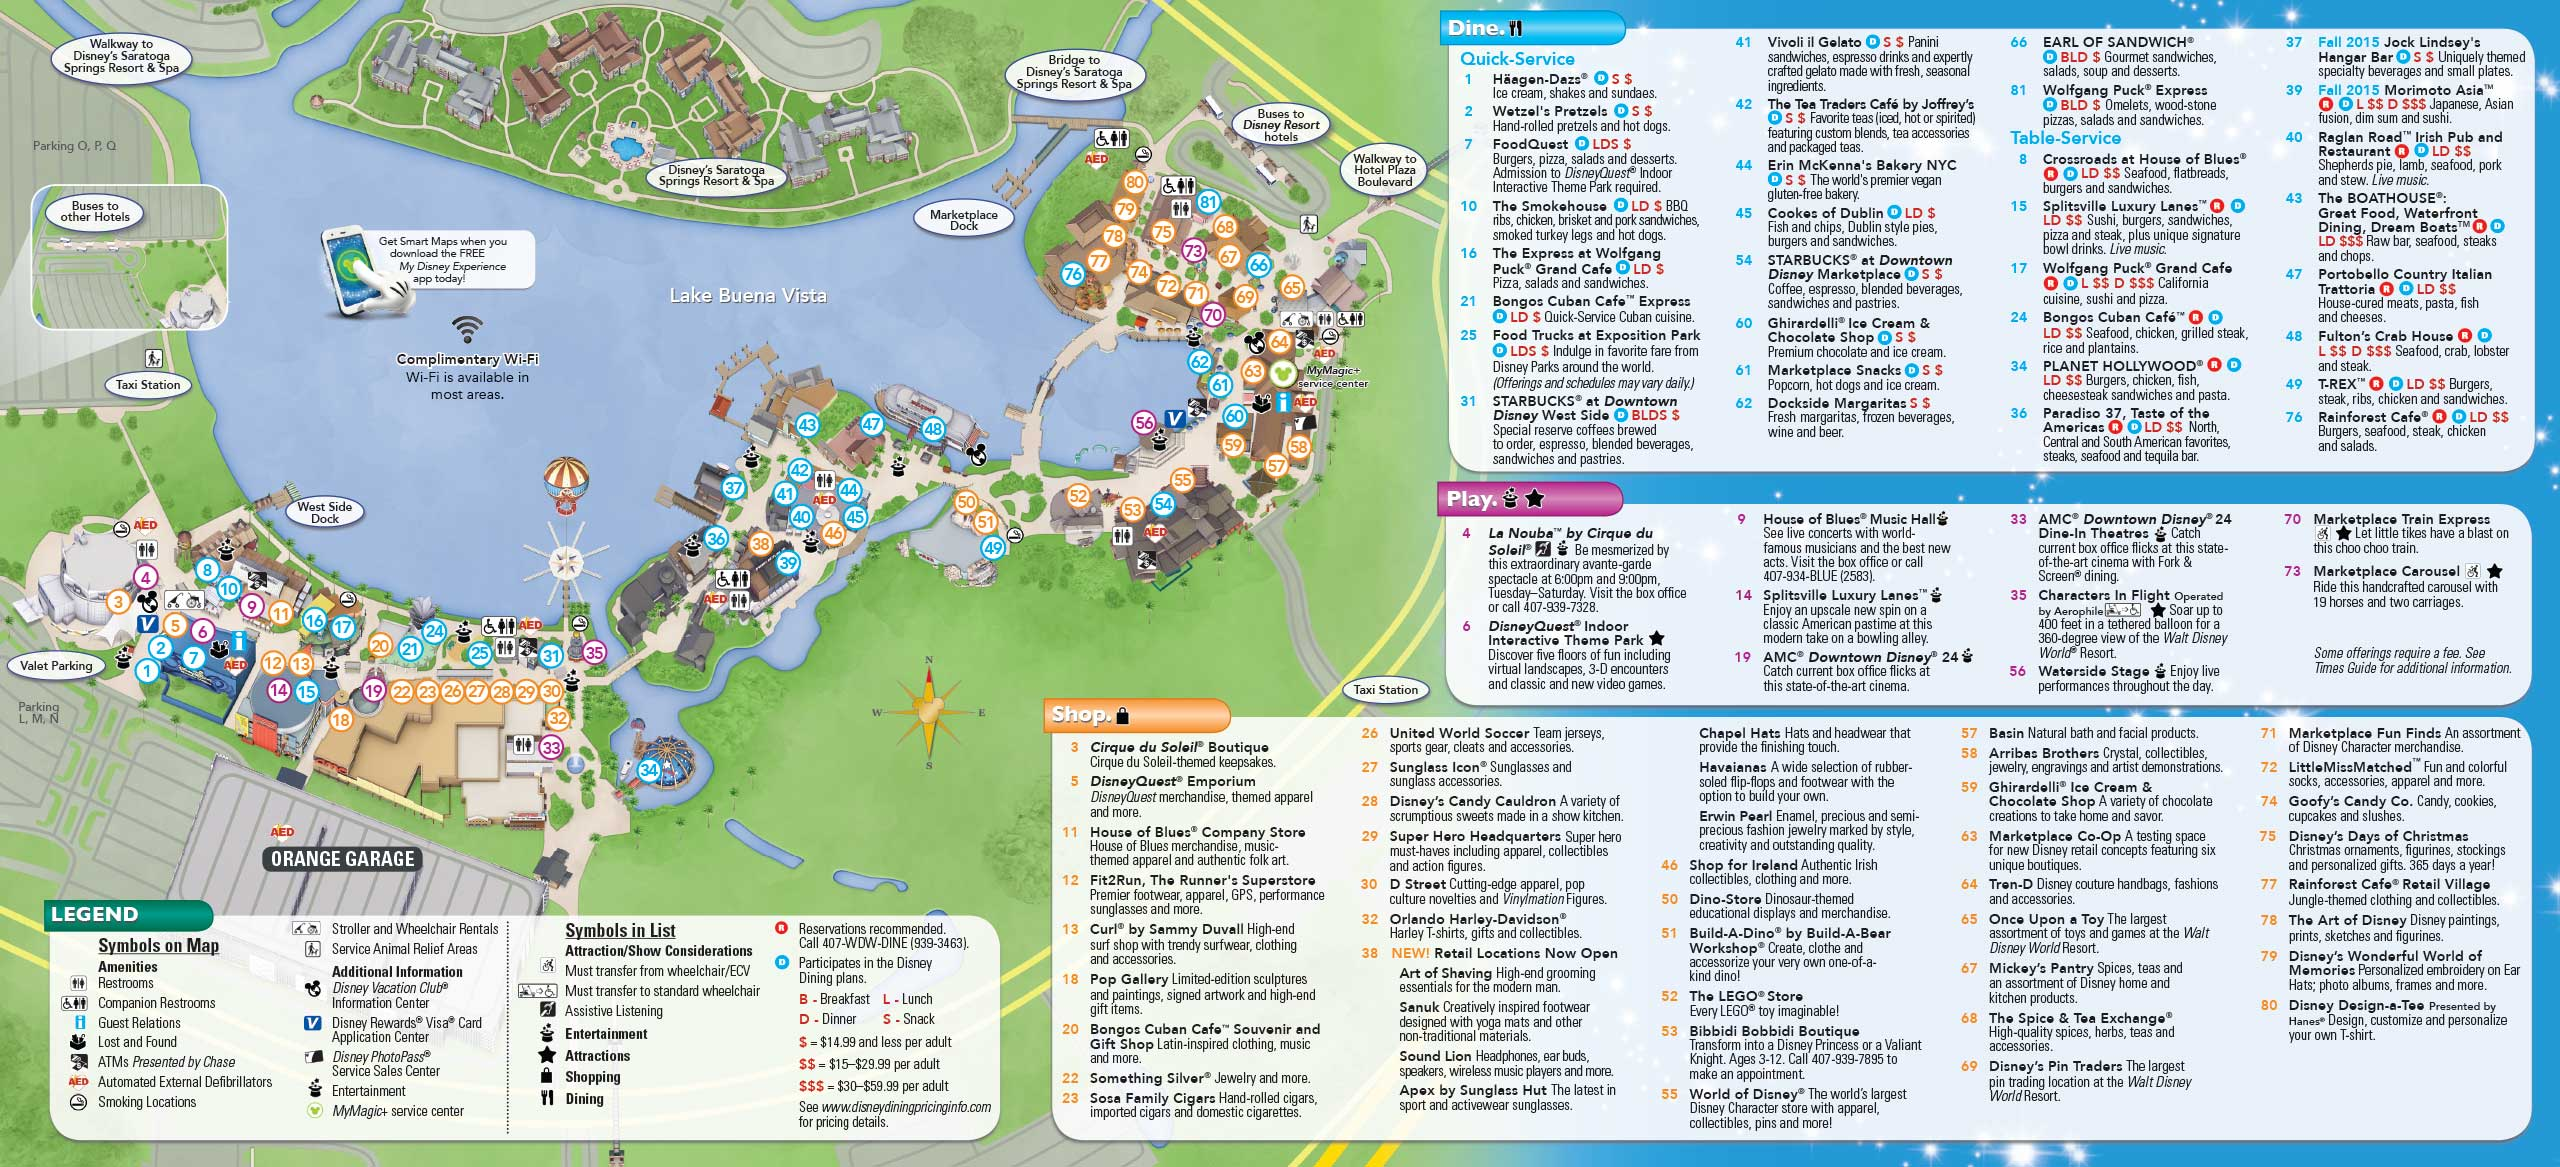 Downtown Disney Orlando Map PHOTOS   New Downtown Disney guide map includes Disney Springs